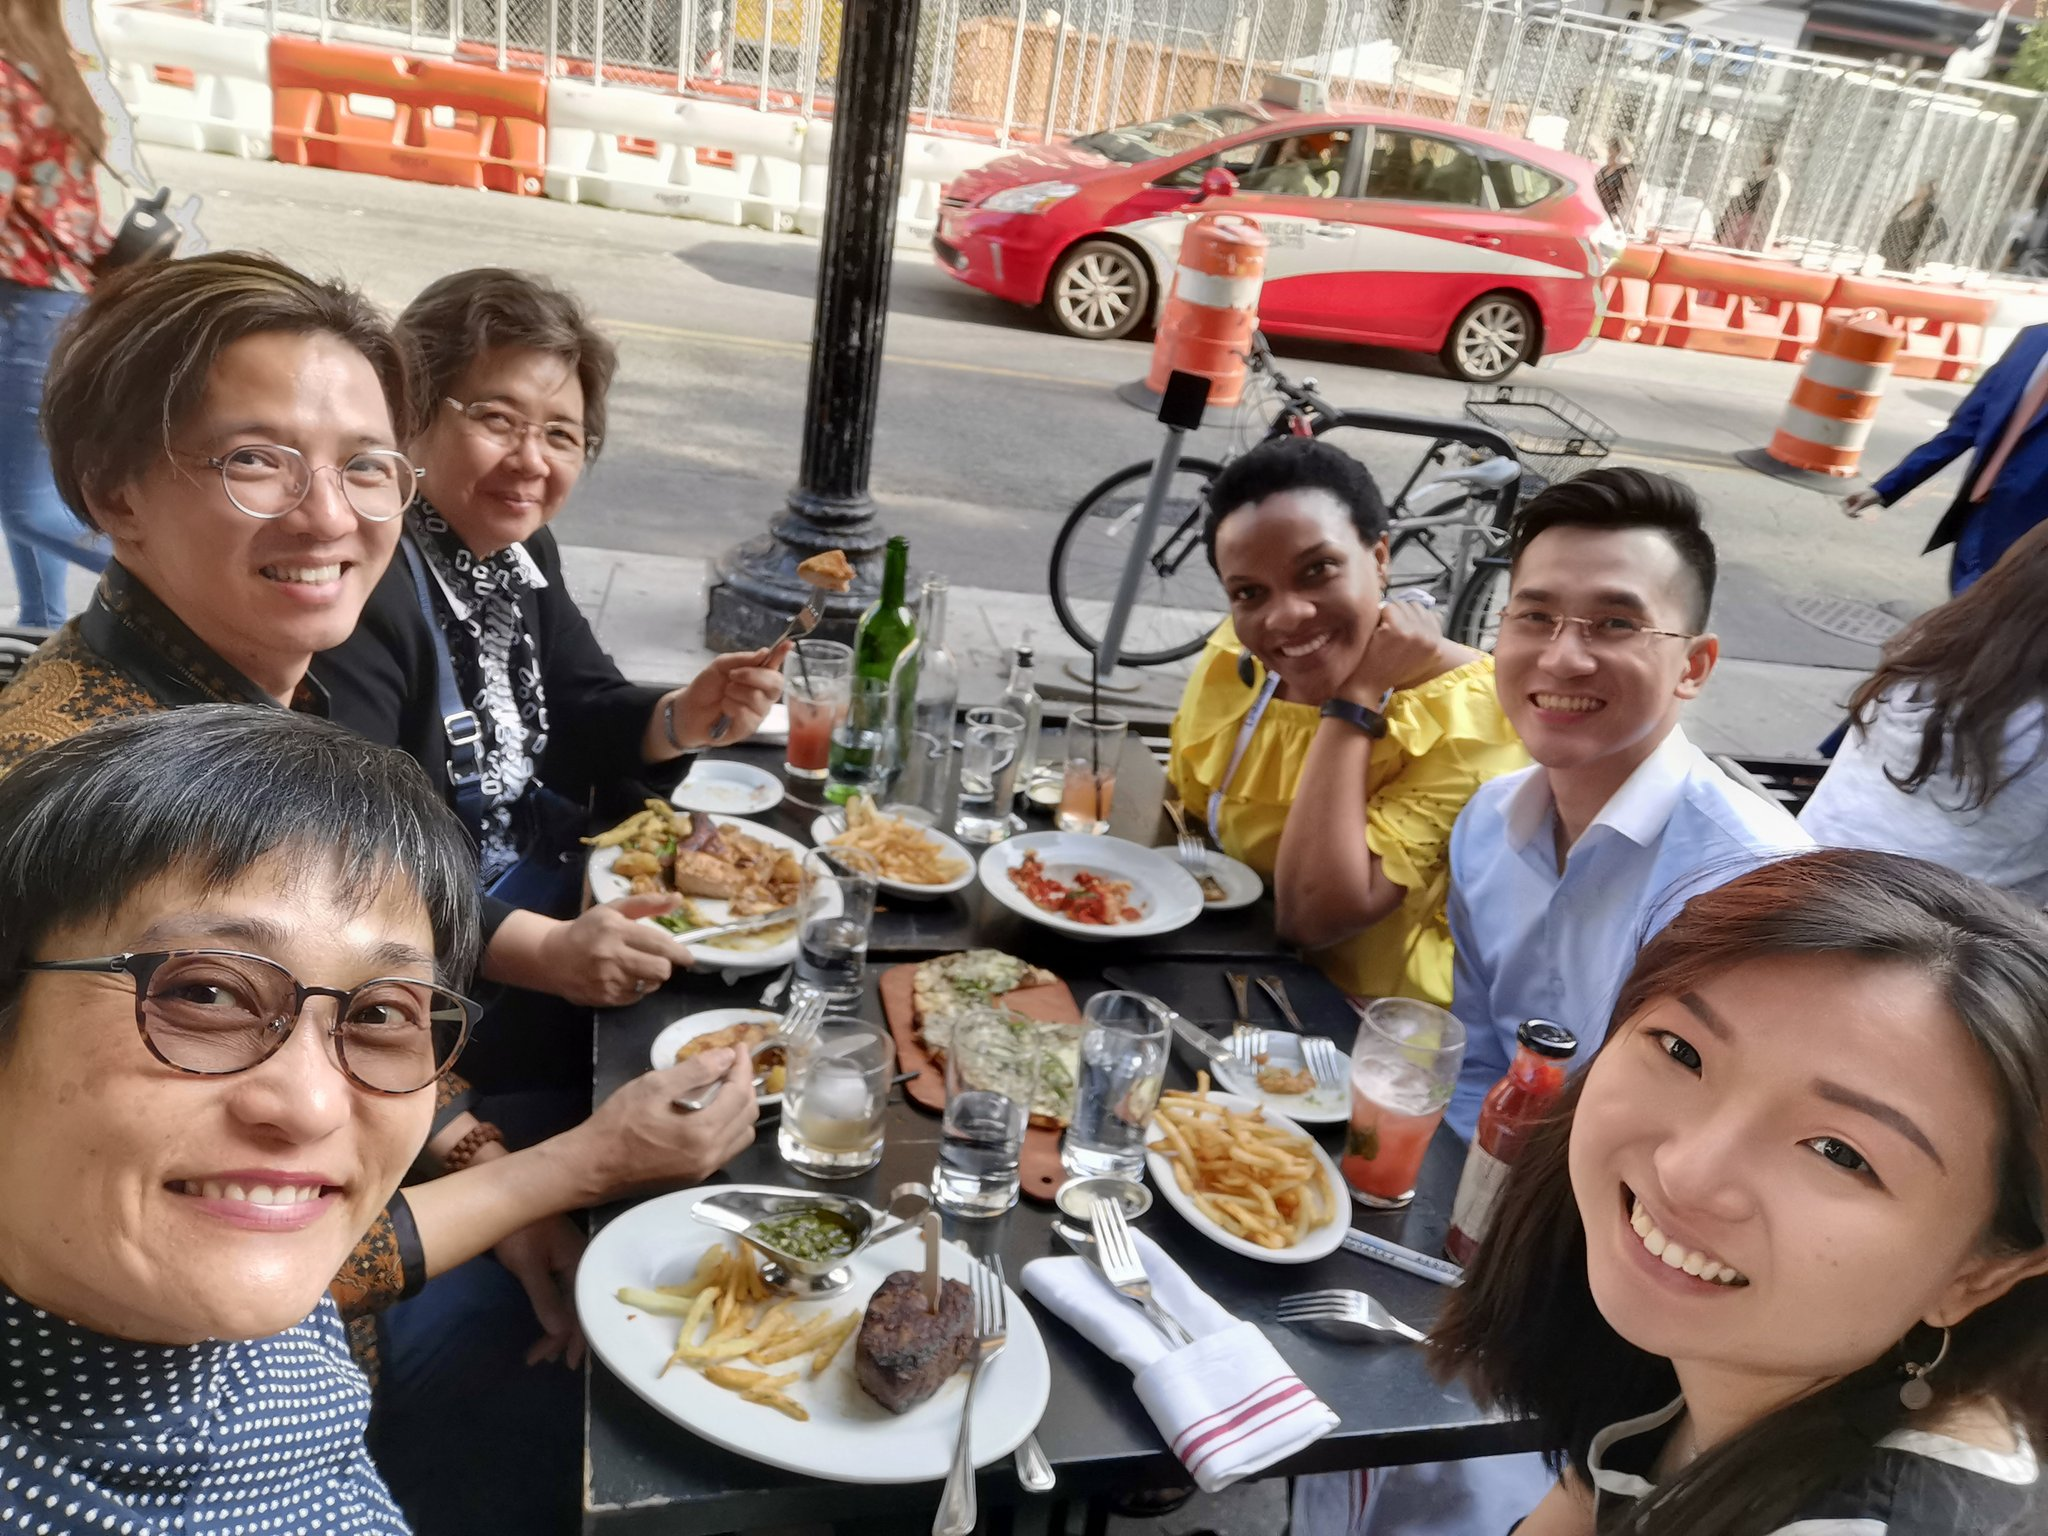 @atd Post ATD - This is what ATD is meant to create - CONNECTIONS!! Indonesia, Singapore, Vietnam and Zimbawe! #ATD2019 https://t.co/rkbyZbOVmx